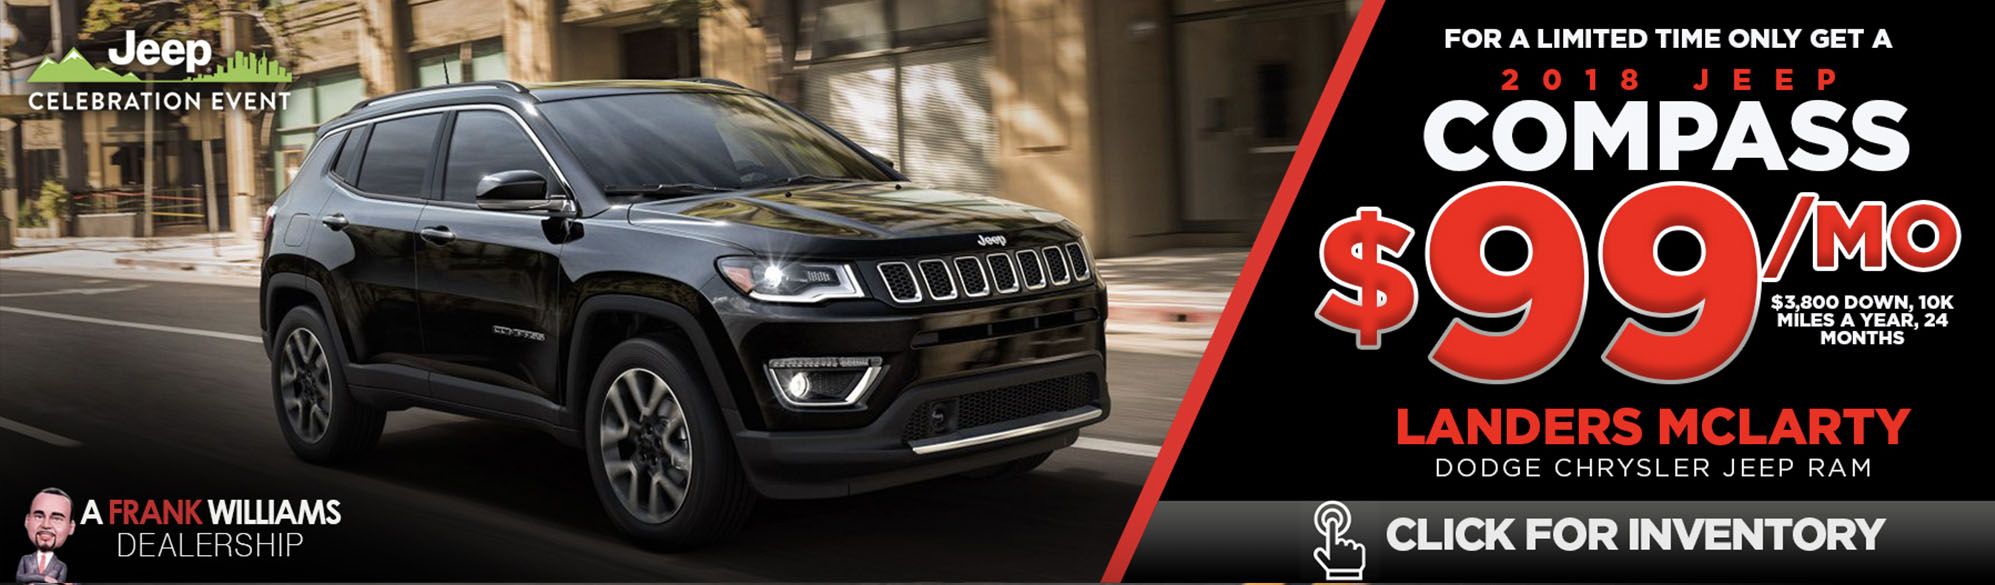 Pick A Your Deal At Landers McLarty Dodge Chrysler Jeep Ram In Huntsville,  AL!